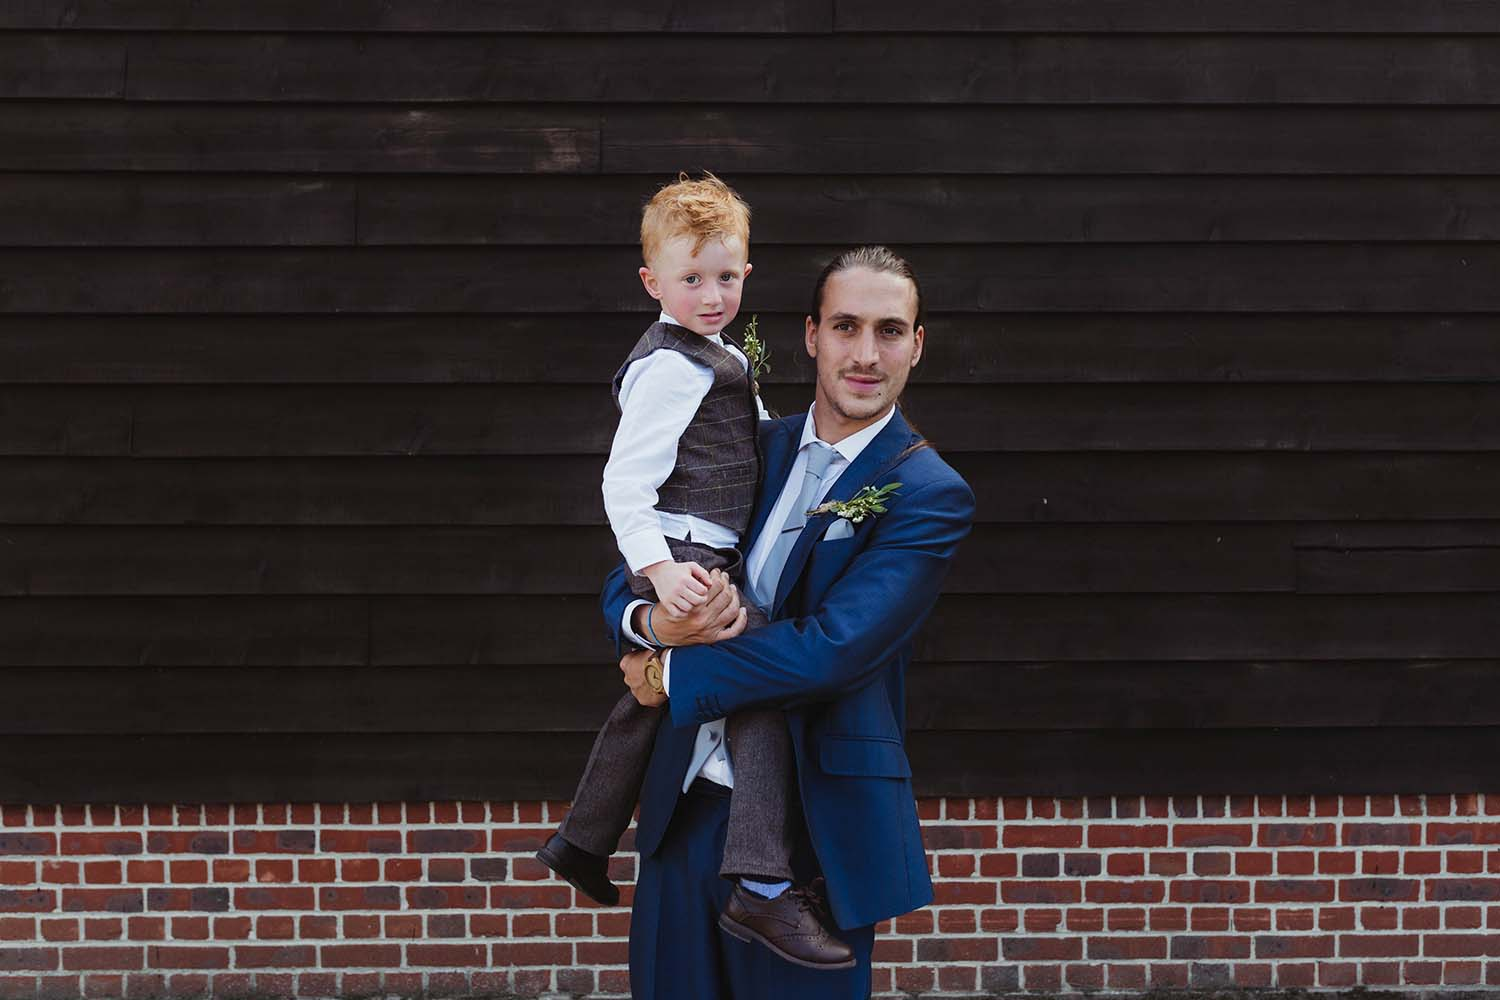 toronto wedding photographer copperred father and son